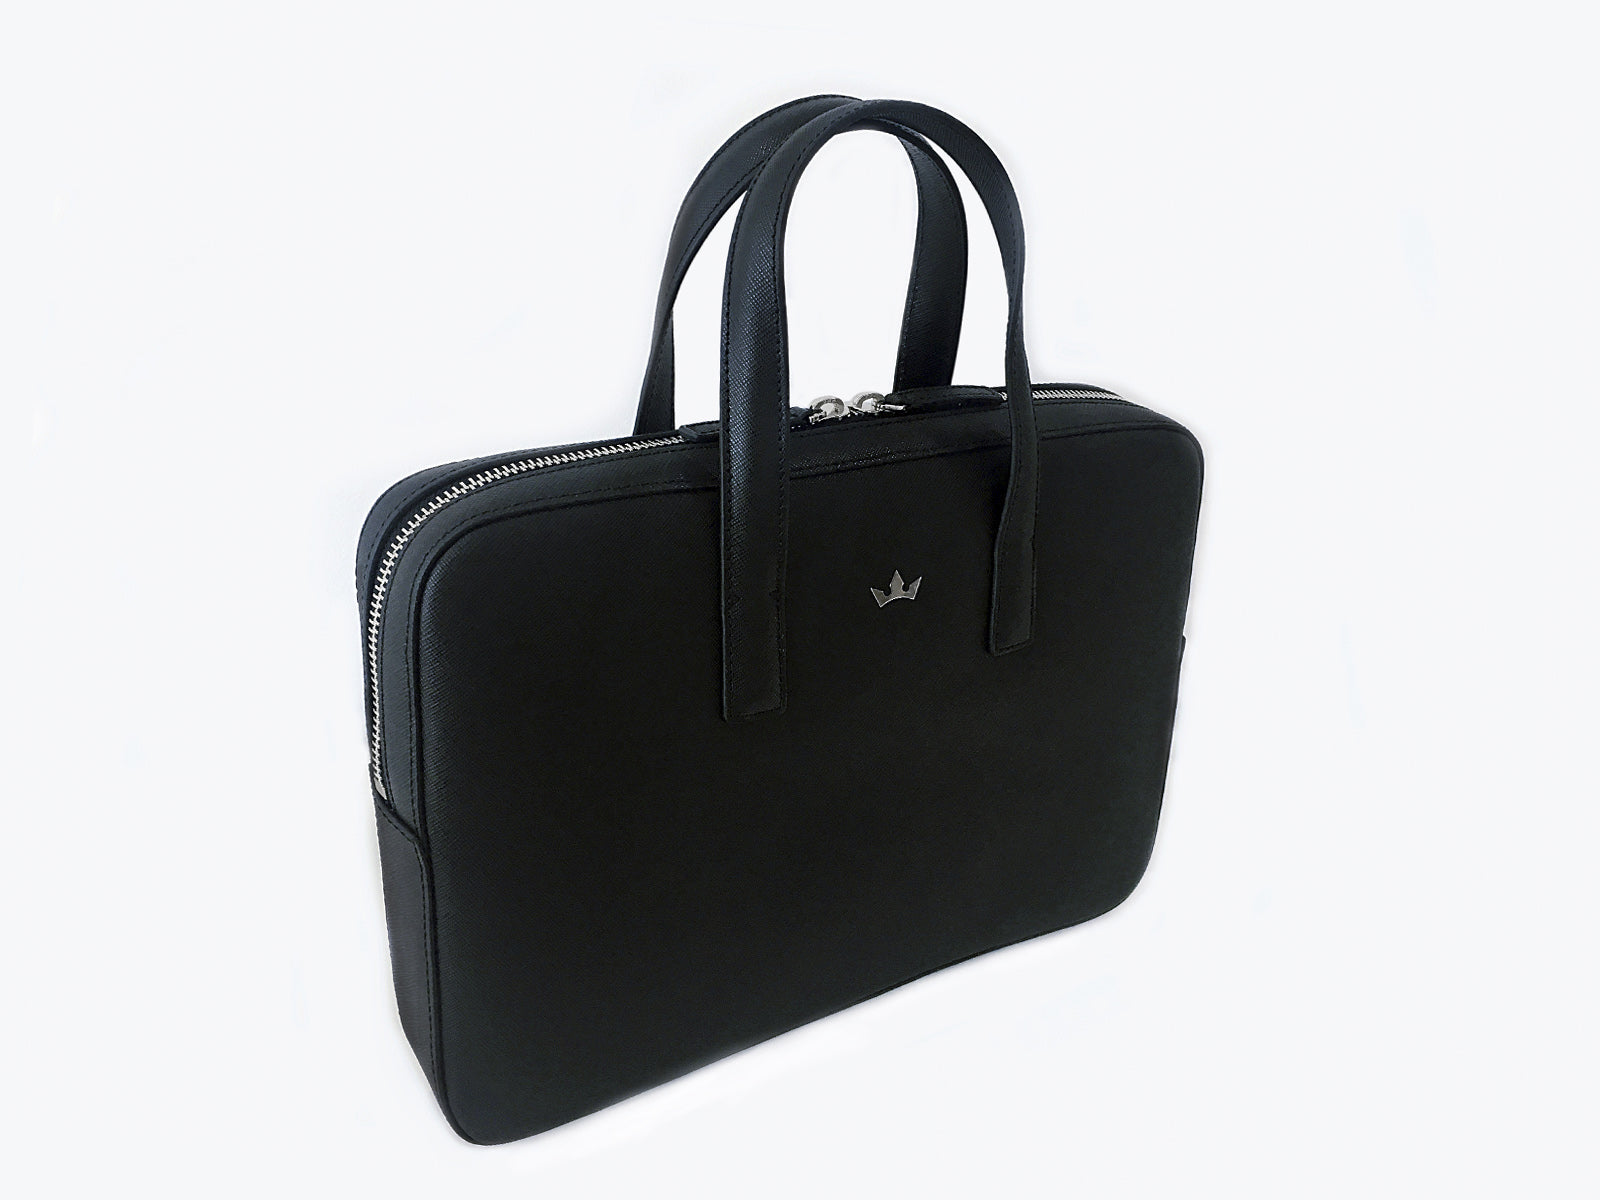 BUSINESS BAG SMALL TROPHY SAFFIANO BLACK